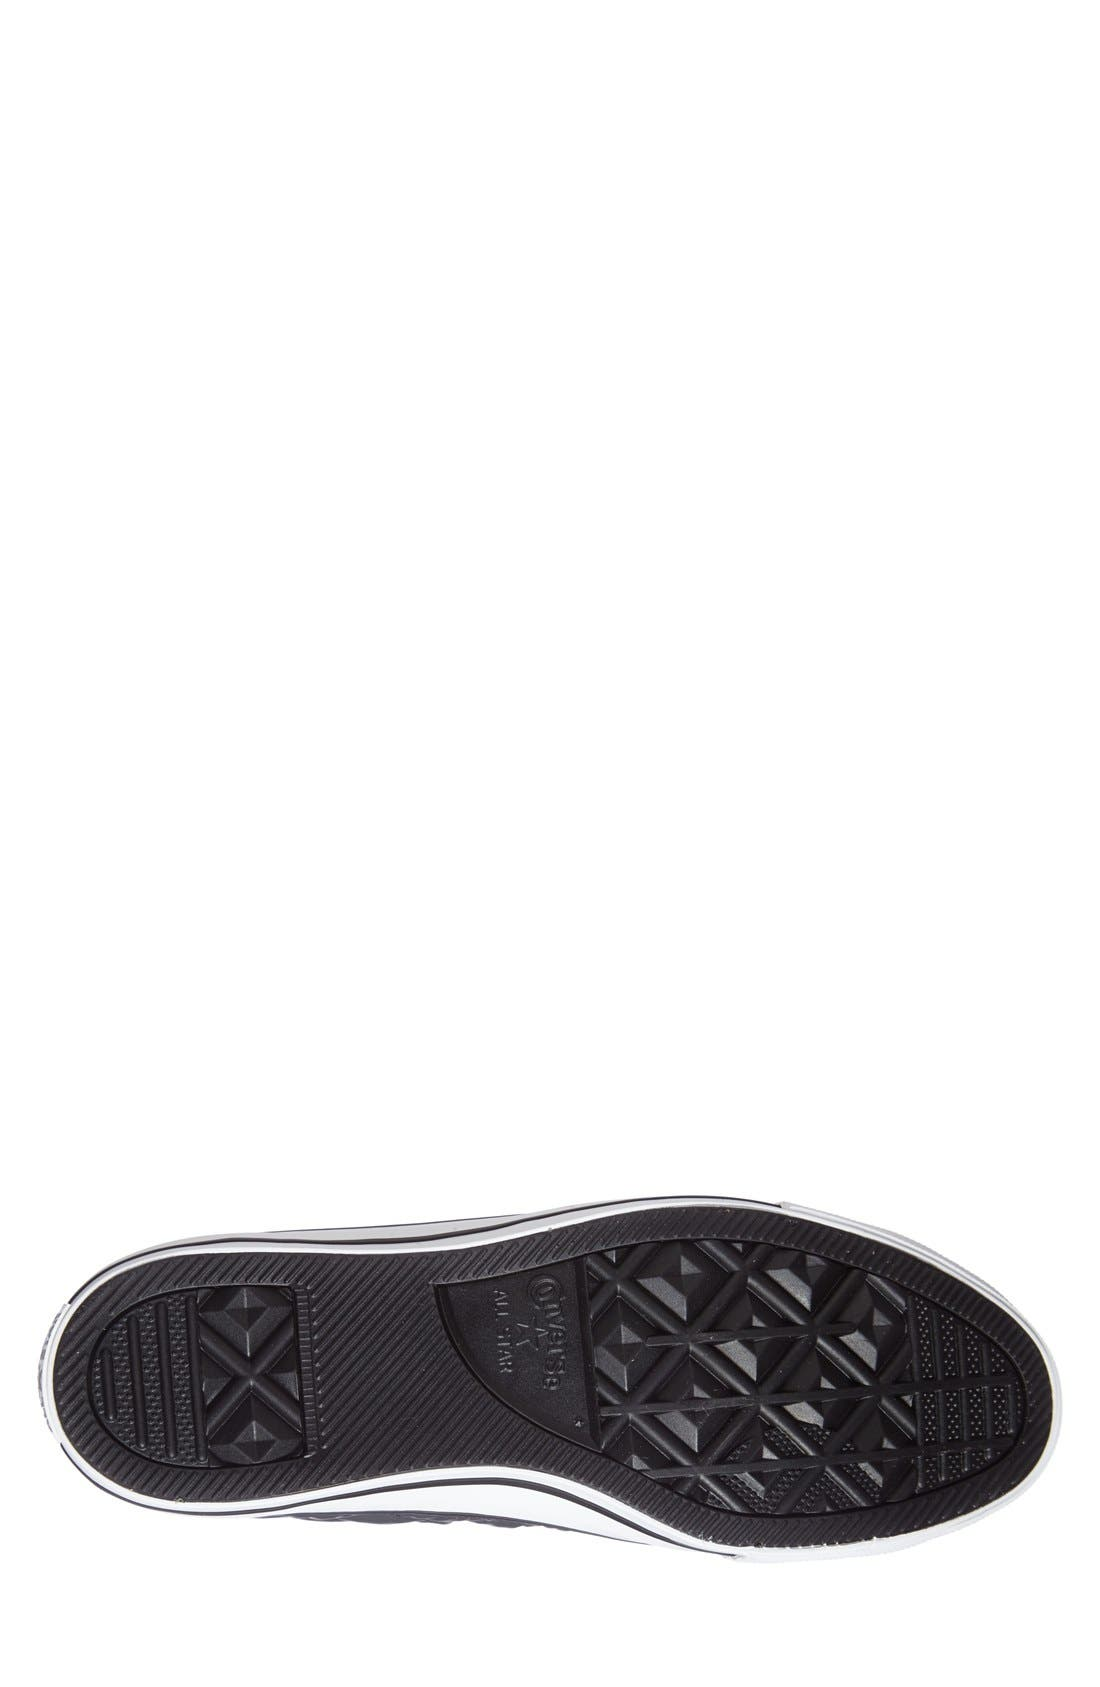 CONVERSE,                             Chuck Taylor<sup>®</sup> All Star<sup>®</sup> Quilted High Top Sneaker,                             Alternate thumbnail 4, color,                             020